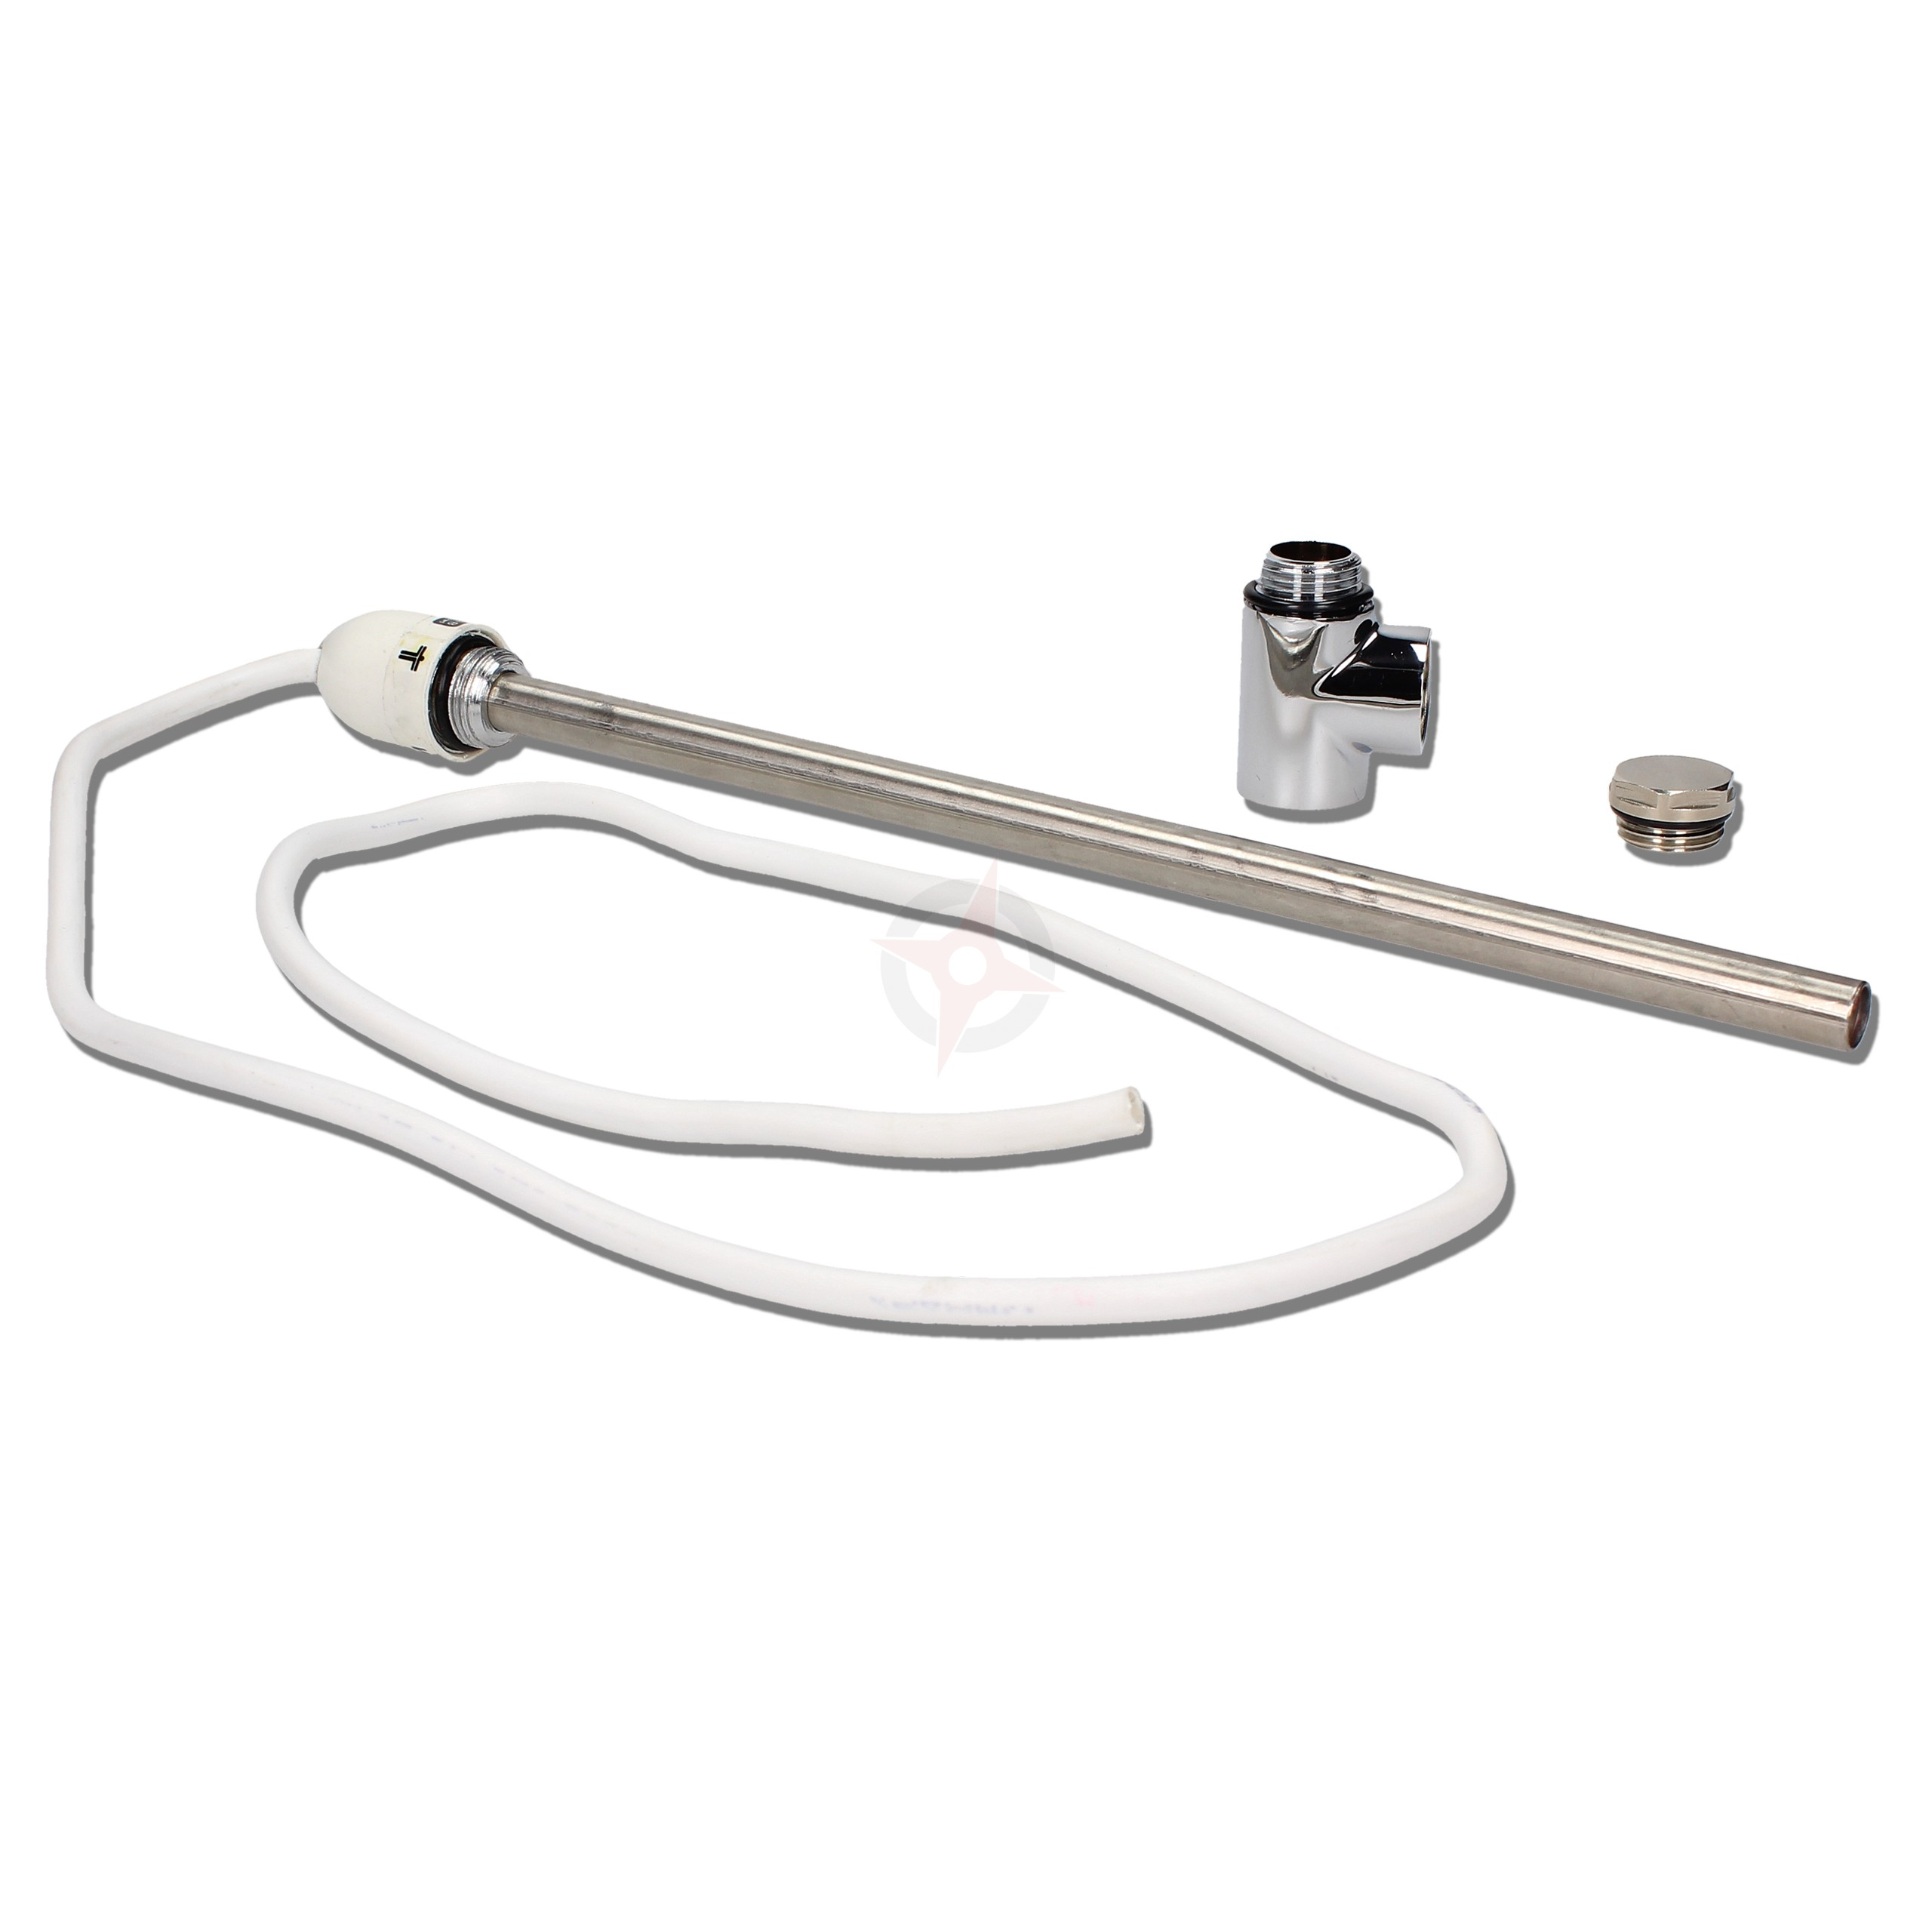 150 Watt Dual Fuel Towel Rail Summer Element c/w Tee Piece